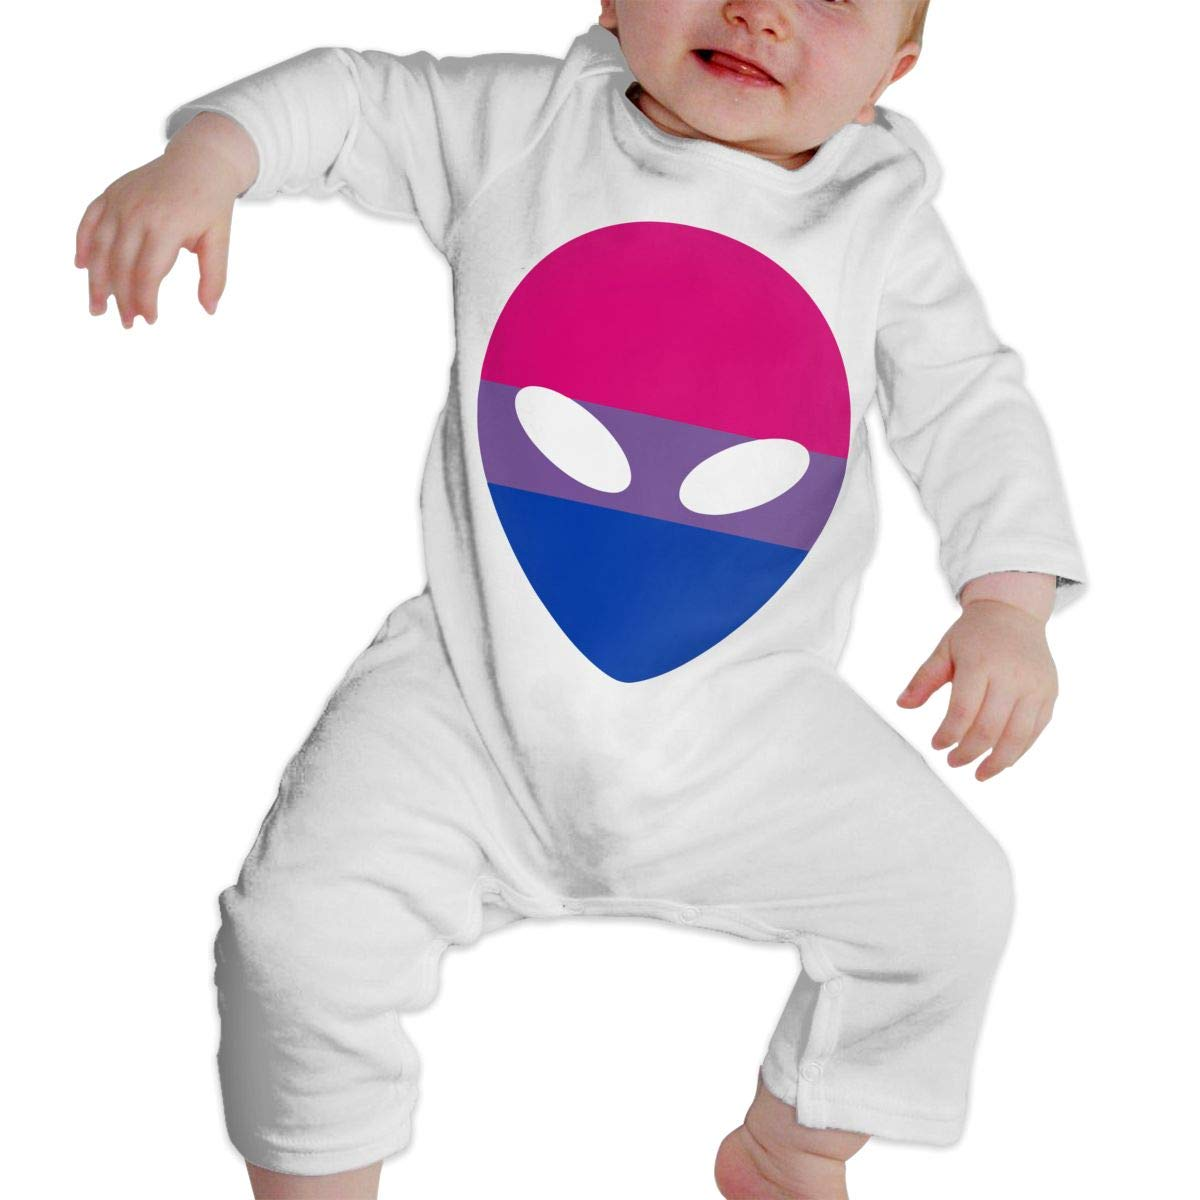 A1BY-5US Baby Infant Toddler Cotton Long Sleeve Bisexual Alien Climb Romper One-Piece Romper Clothes